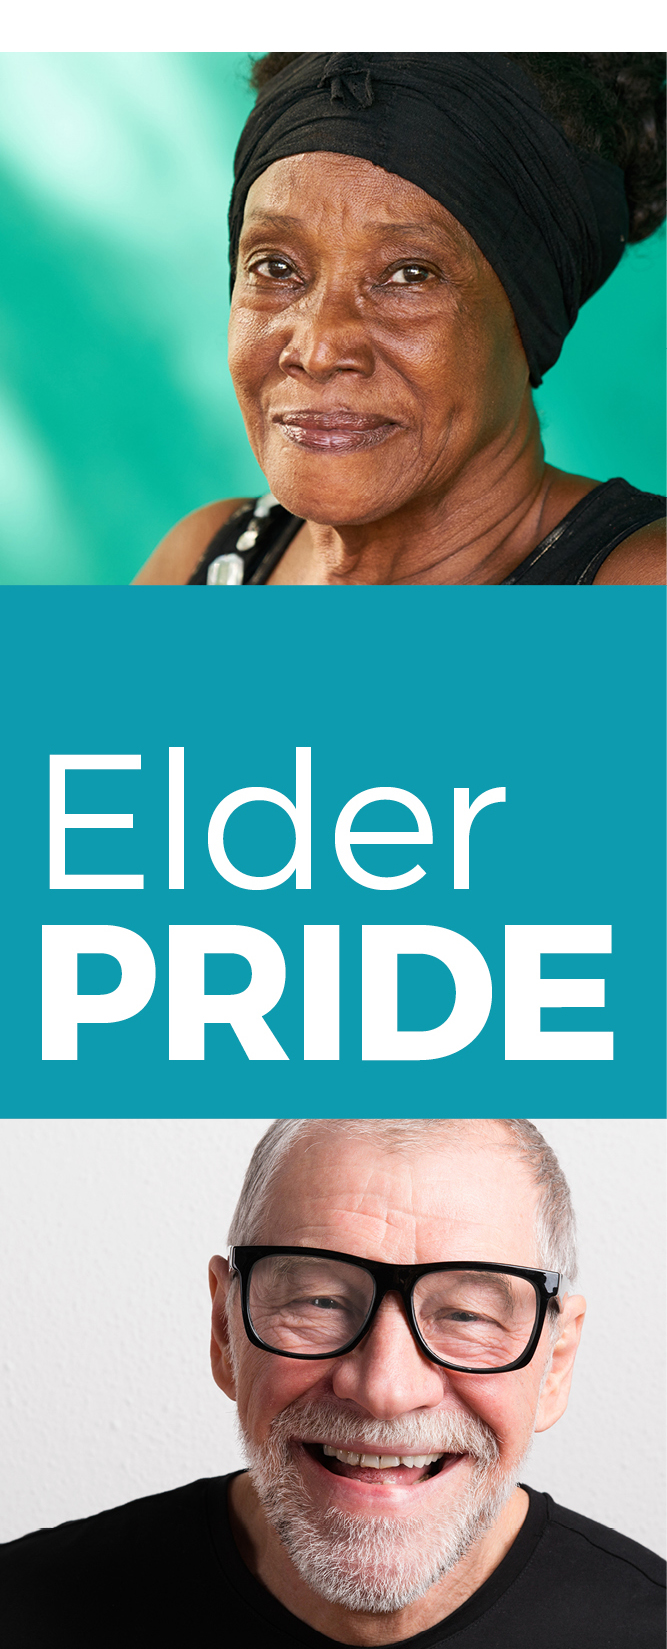 ElderPRIDE at Brooklyn Community Pride Center